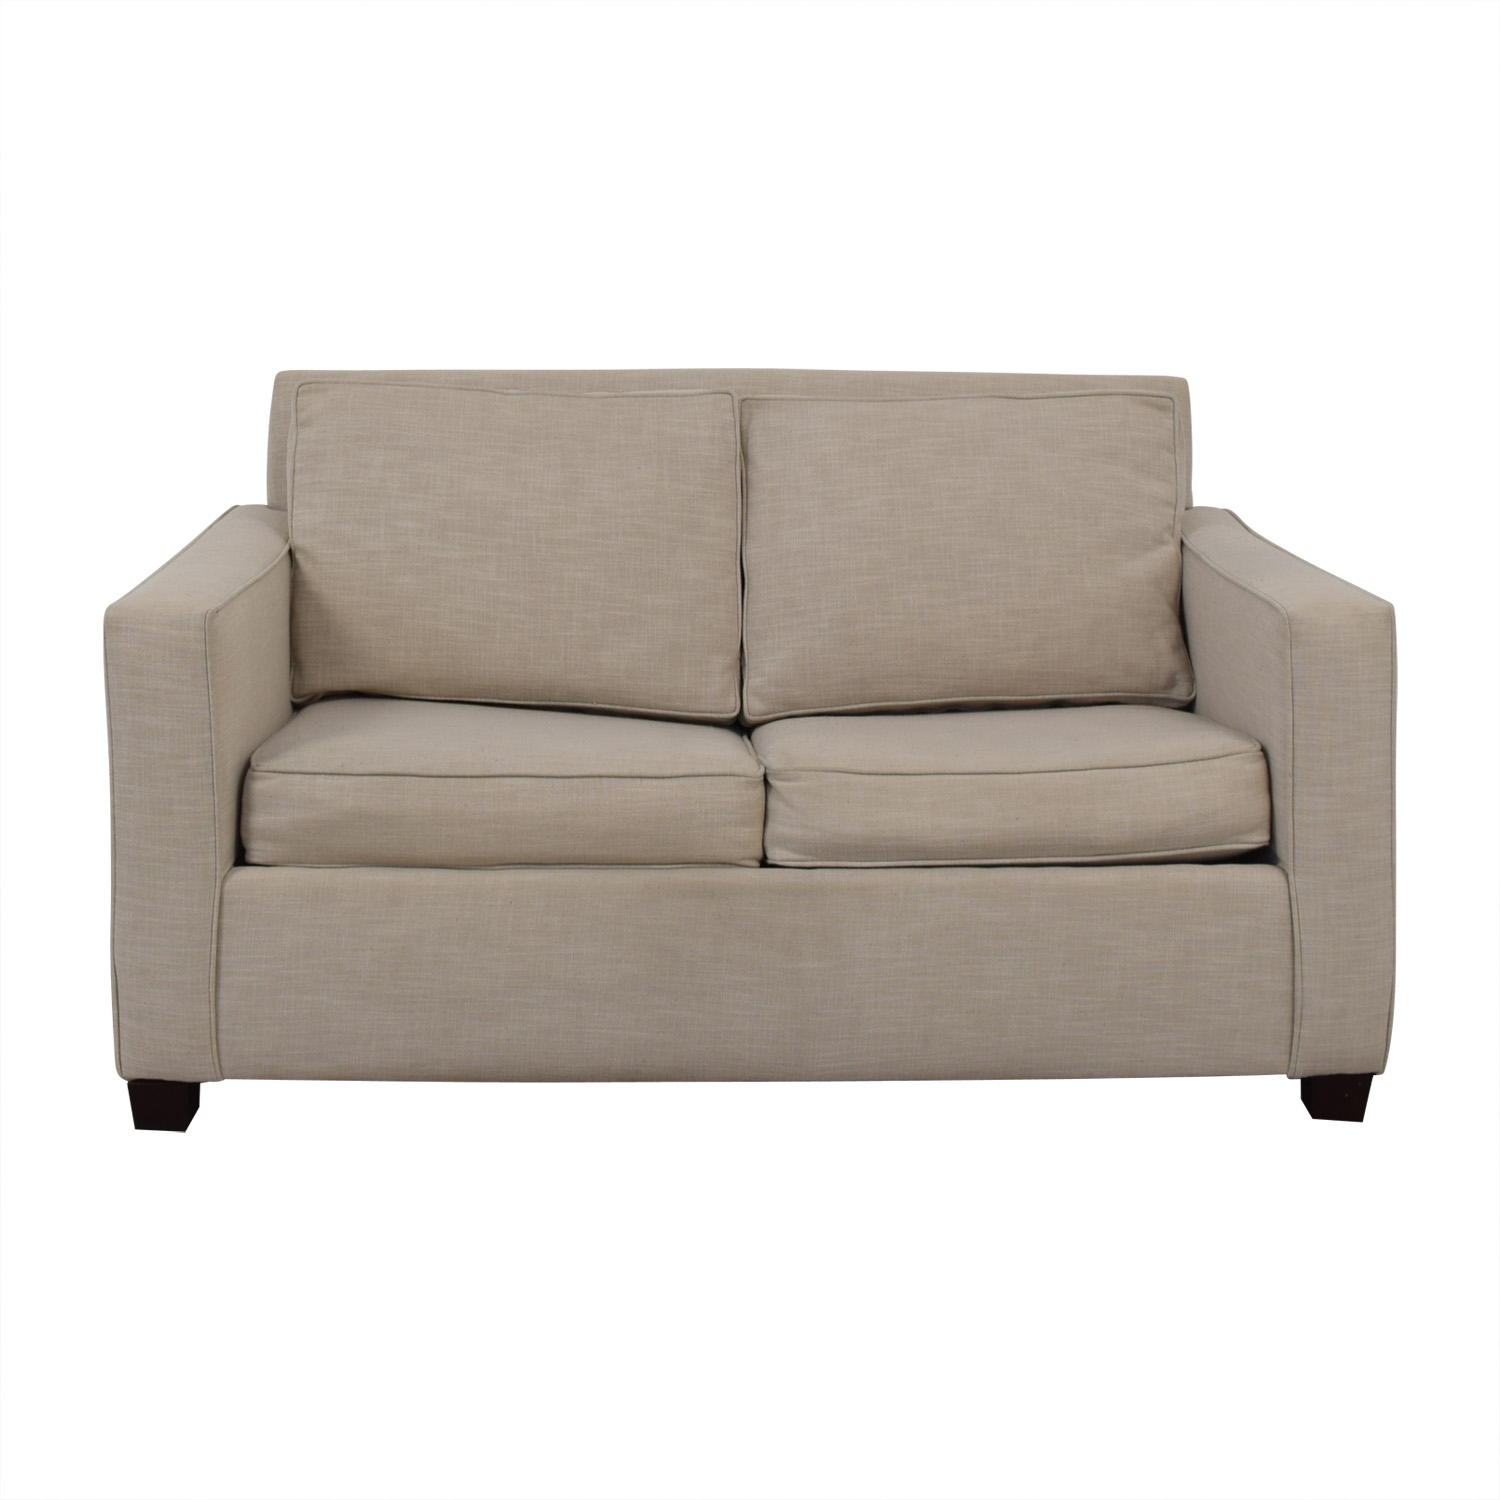 West Elm West Elm Henry Grey Loveseat with Twin Pullout Convertible nyc